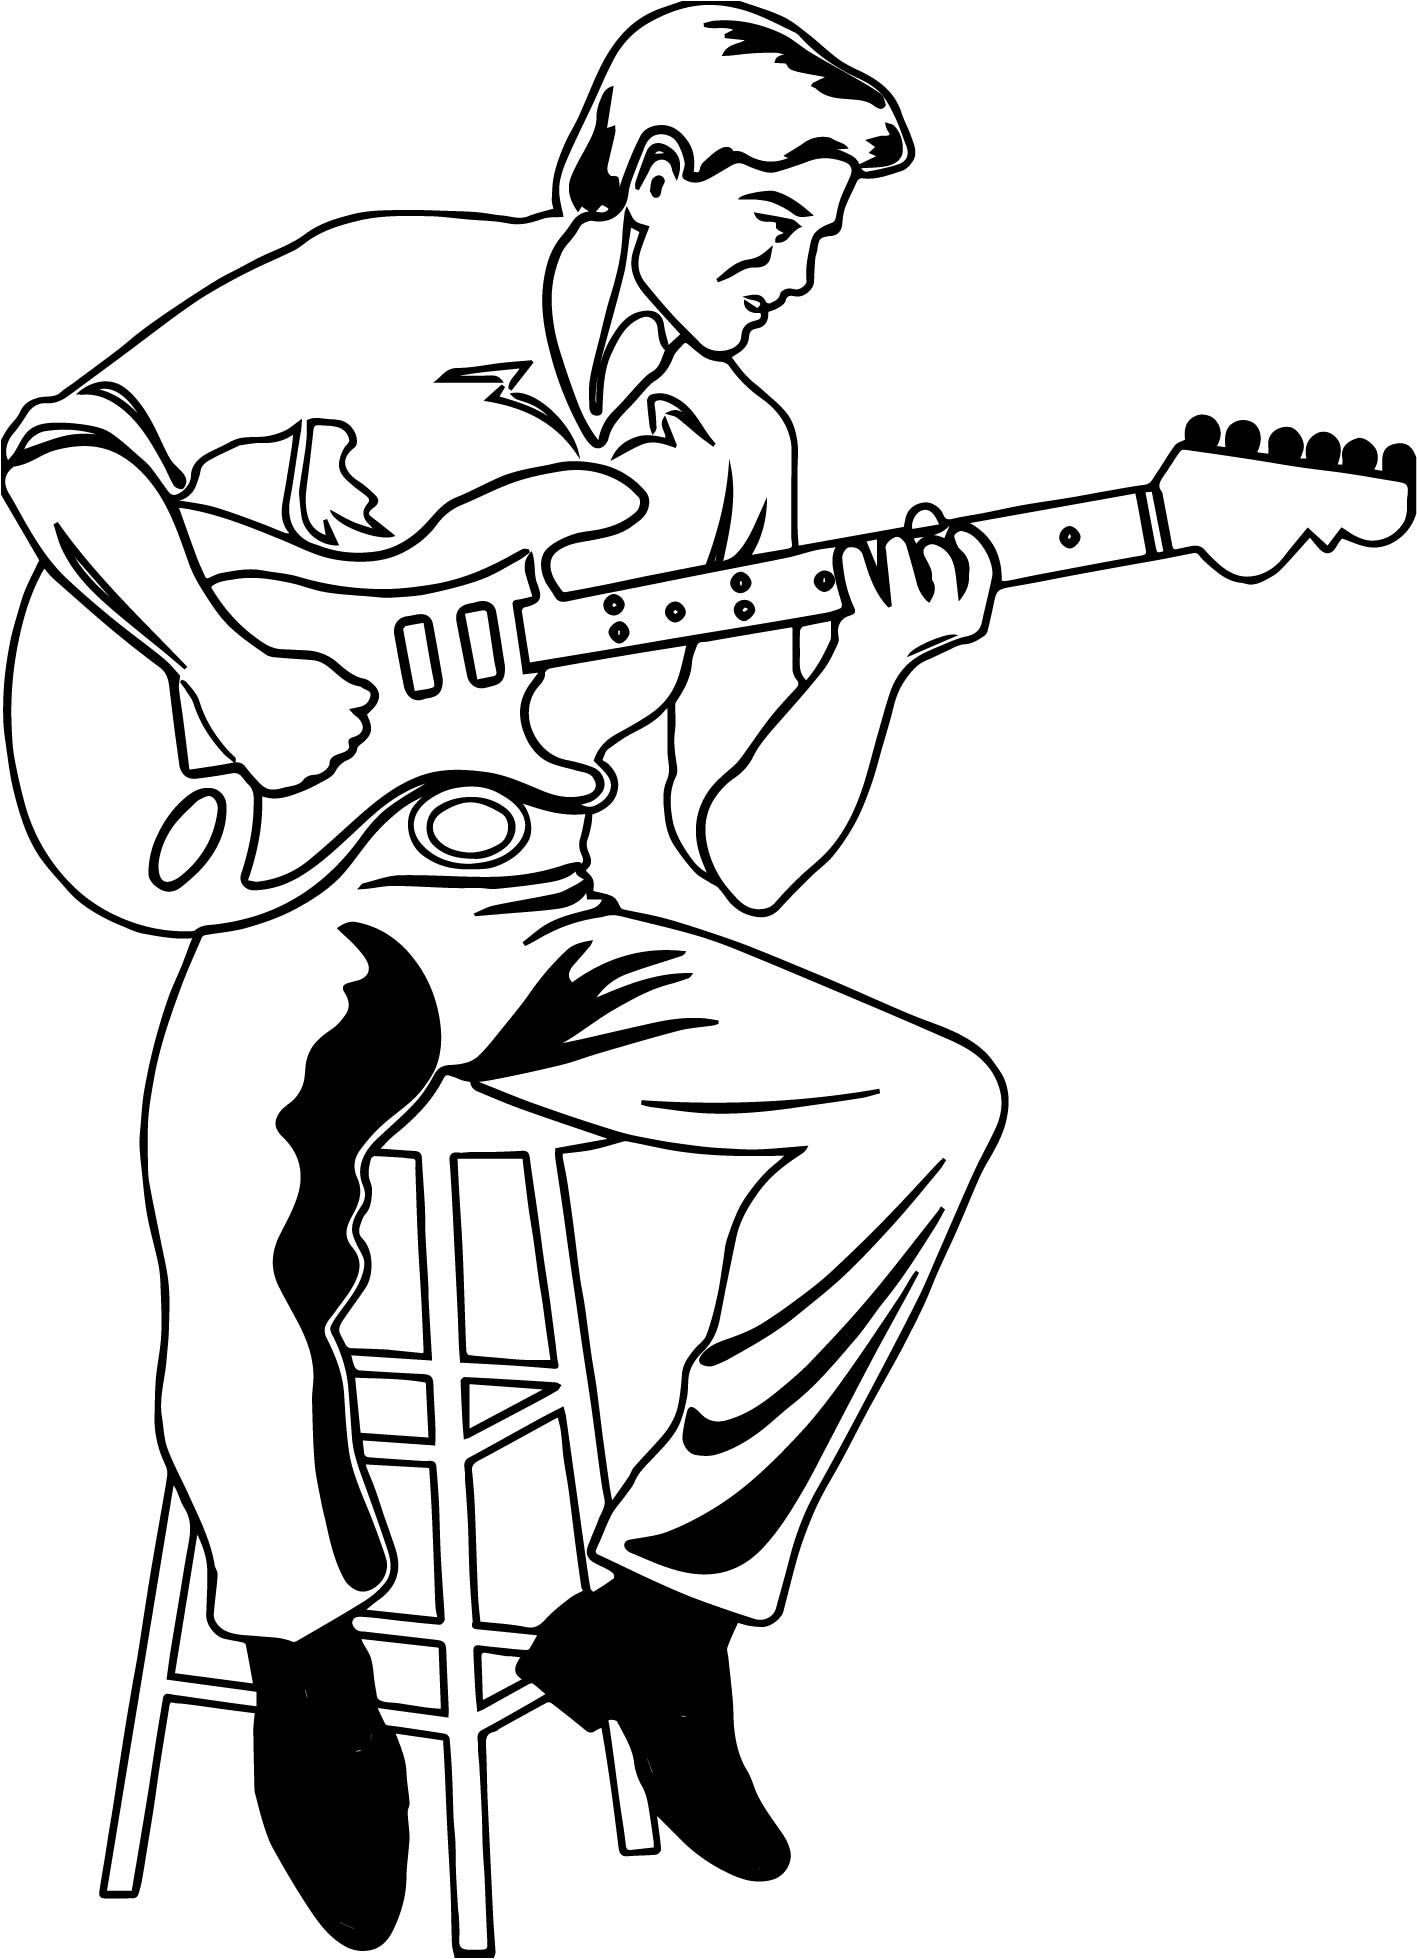 Awesome Illustration Of A Man Playing An Electric Playing The